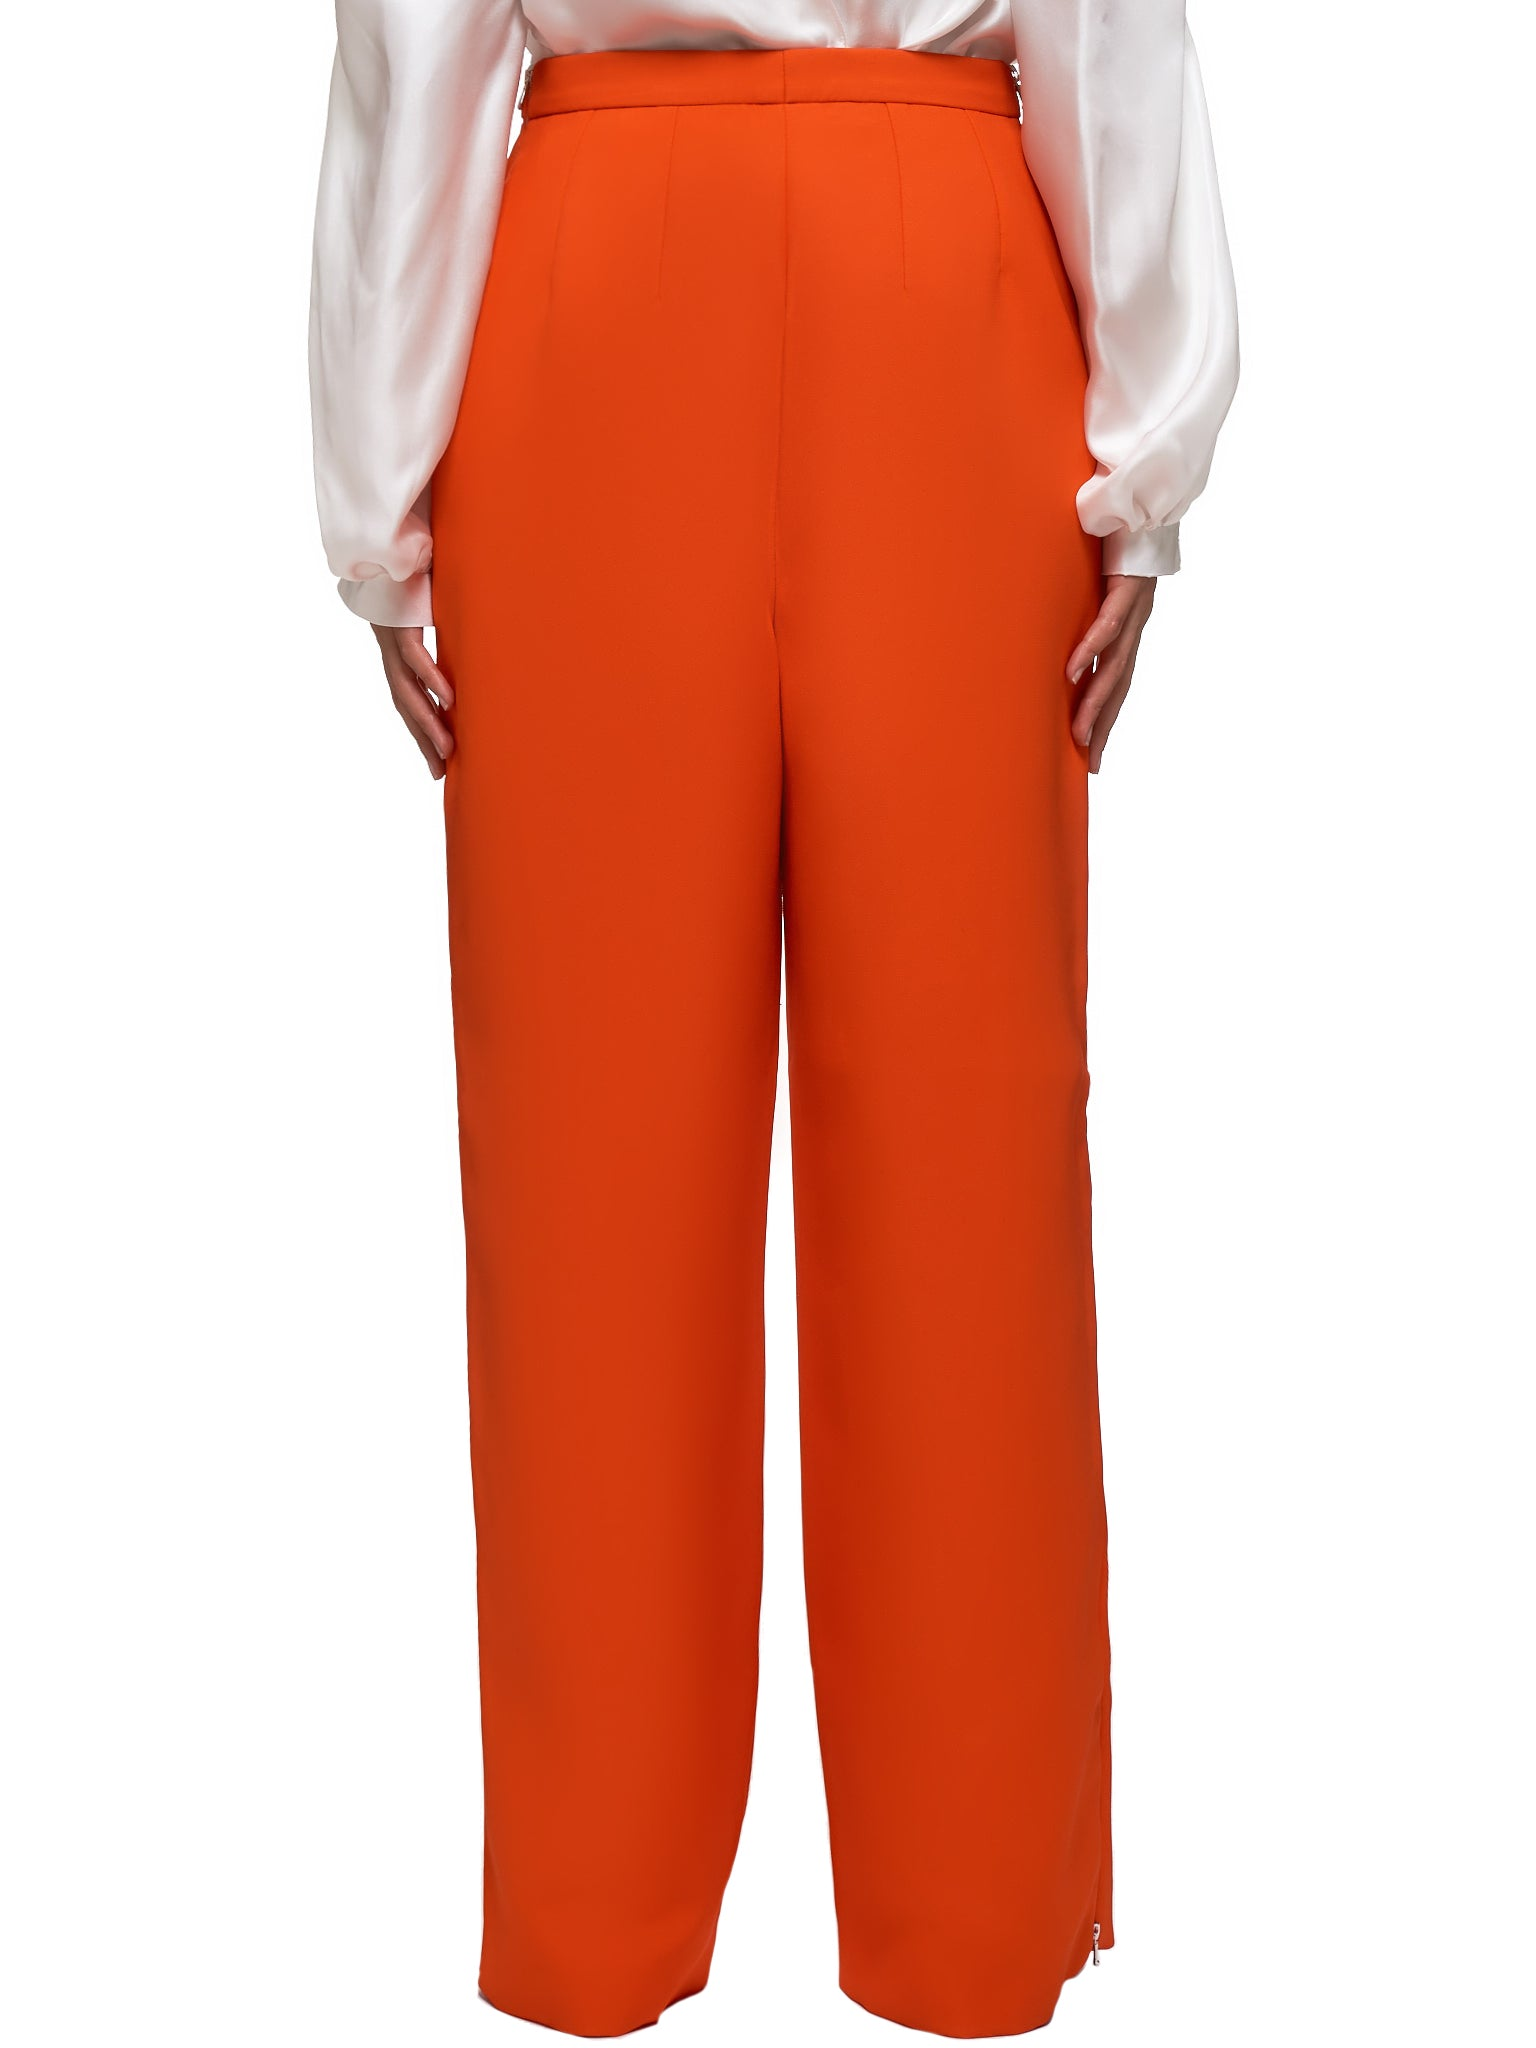 Nicolas Lecourt Mansion Pants - Hlorenzo Back